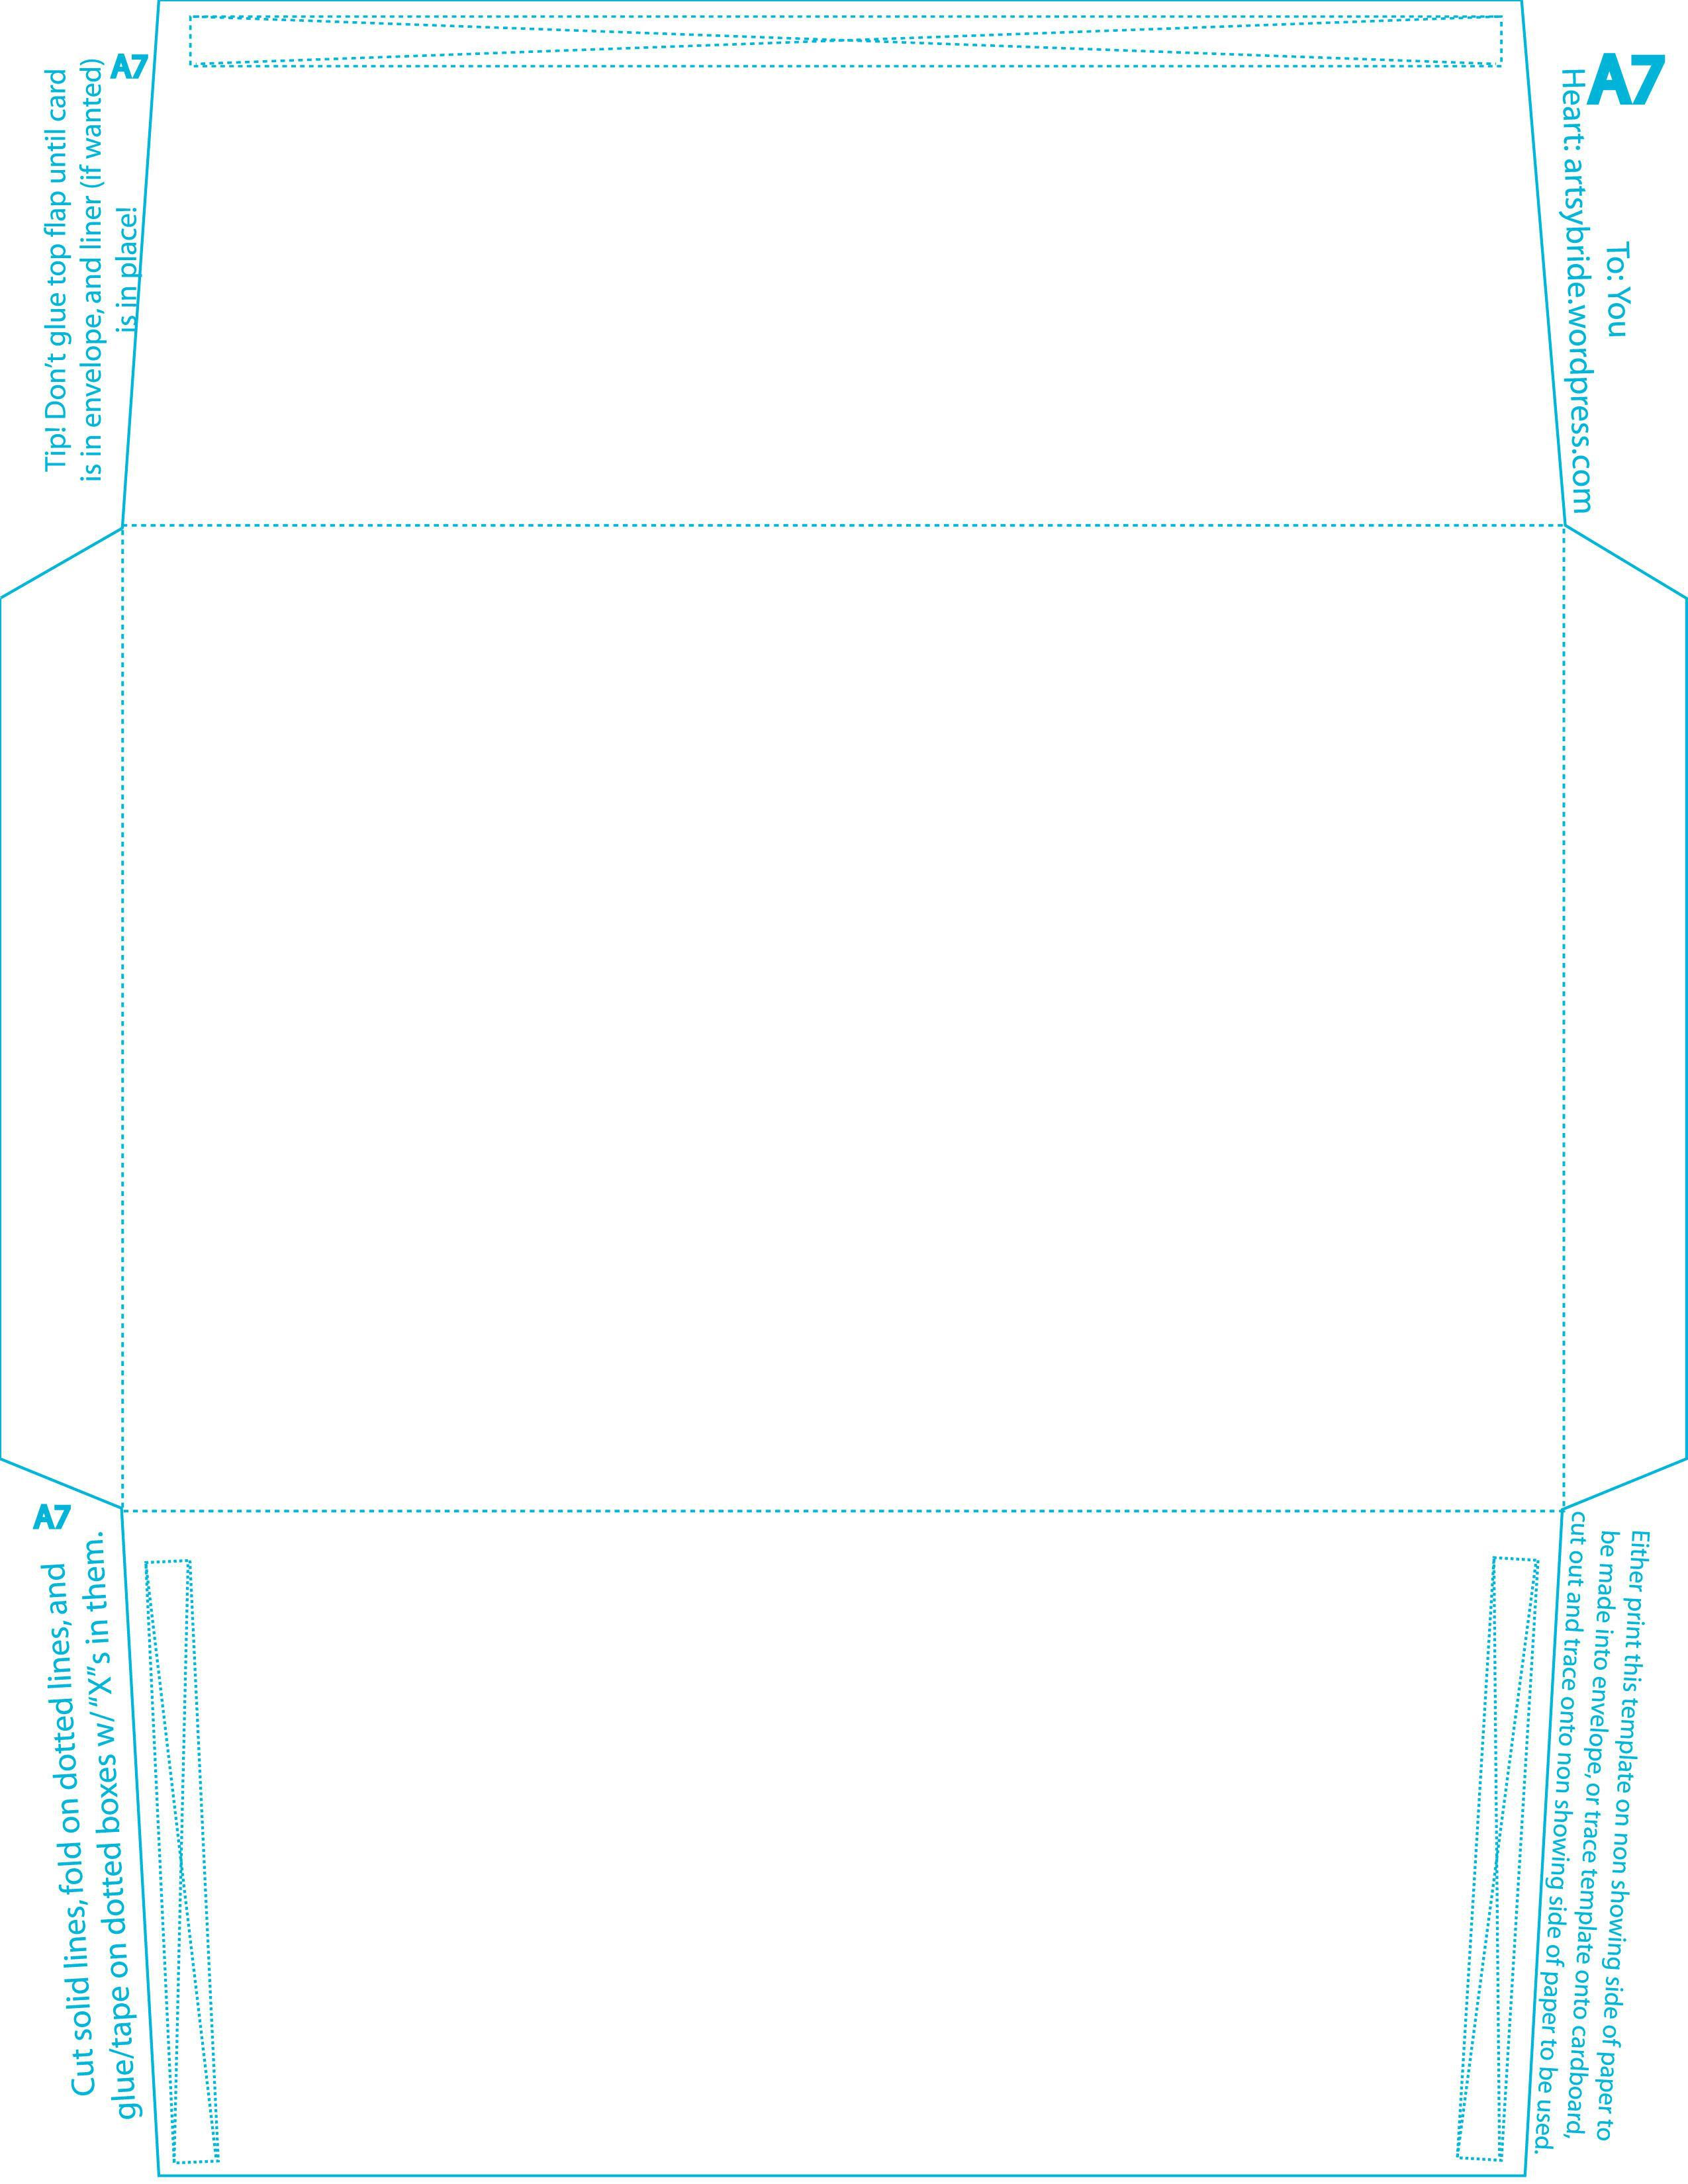 005 Formidable A7 Envelope Liner Template Square Flap Picture Full